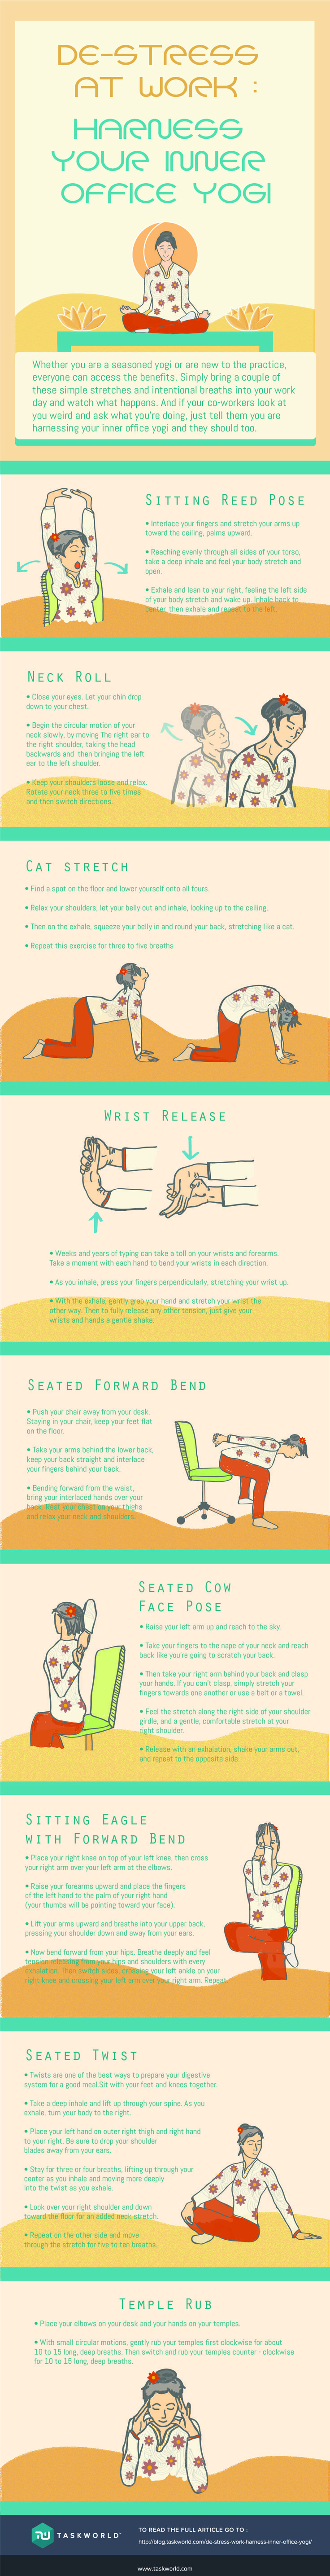 9 Yoga Positions To Destress at Work #Infographic #Yoga #Health #Stress